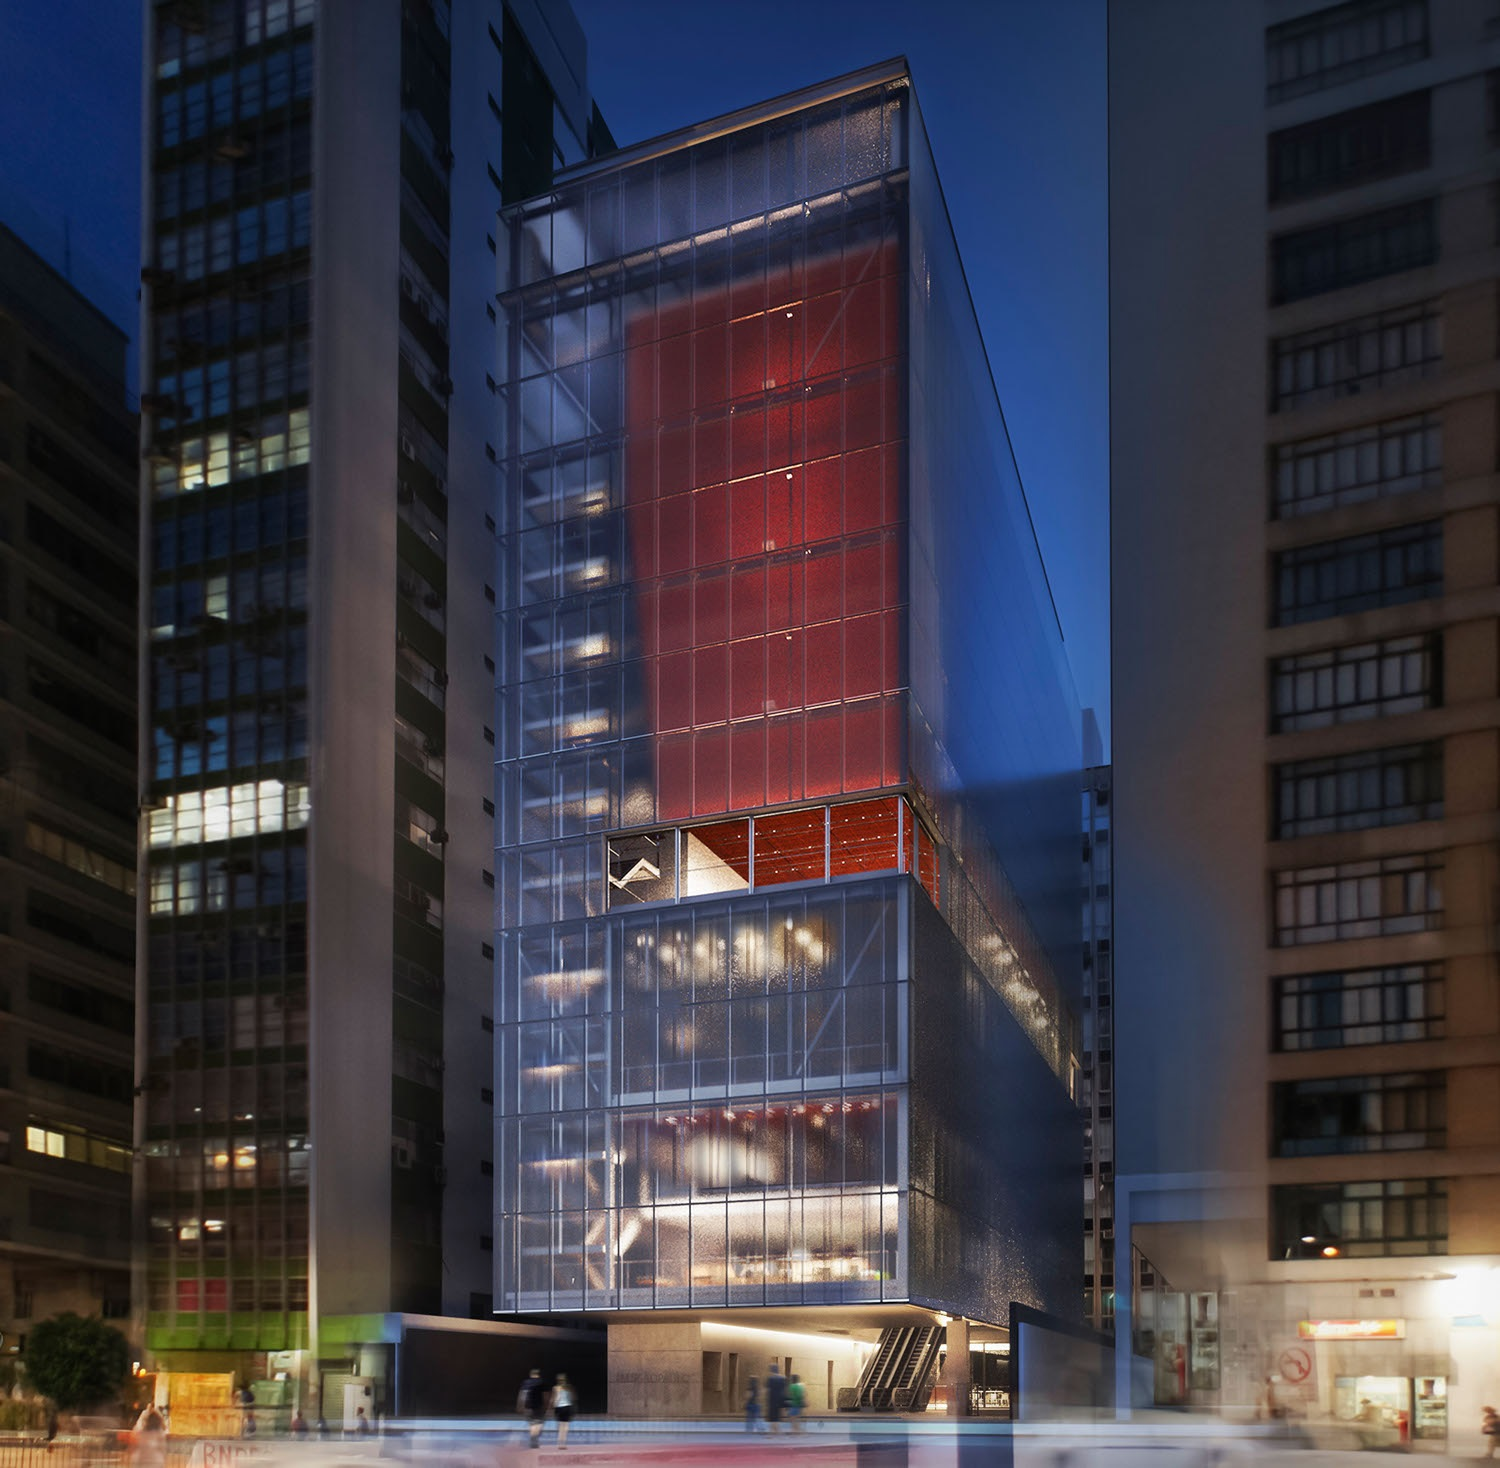 The new IMS Paulista (3D model), which will be open to the public in 2017.